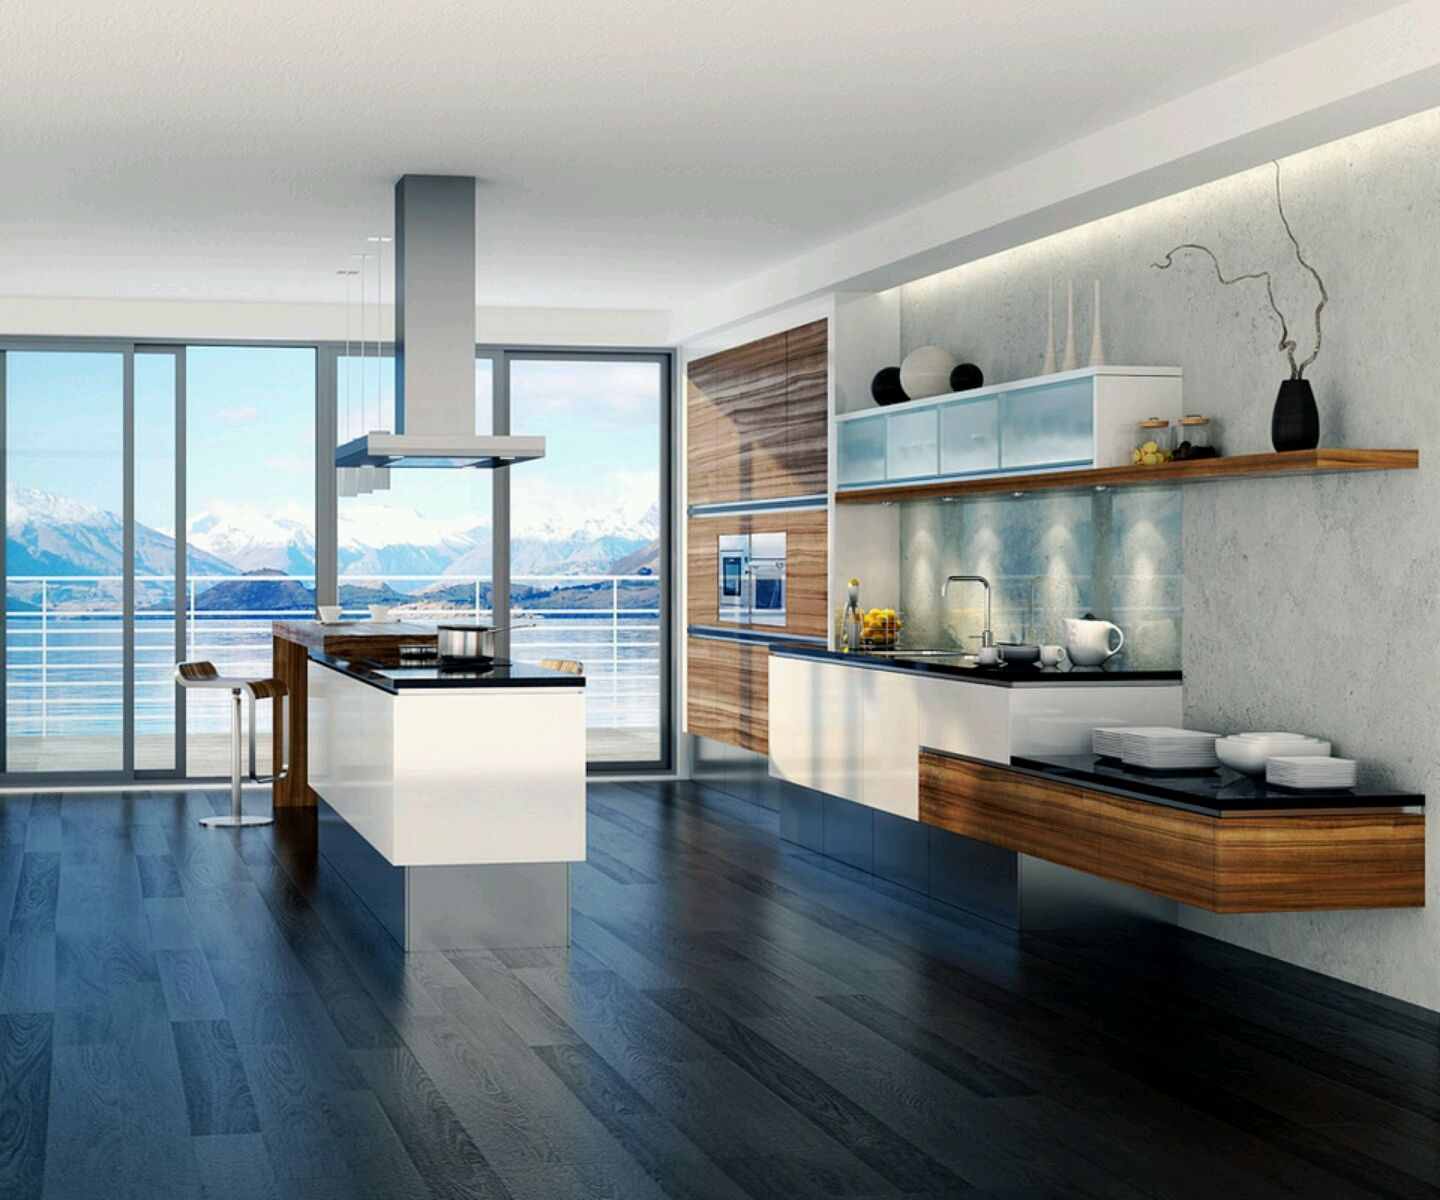 Kitchy Kitchen Decor: Contemporary Kitchen Images